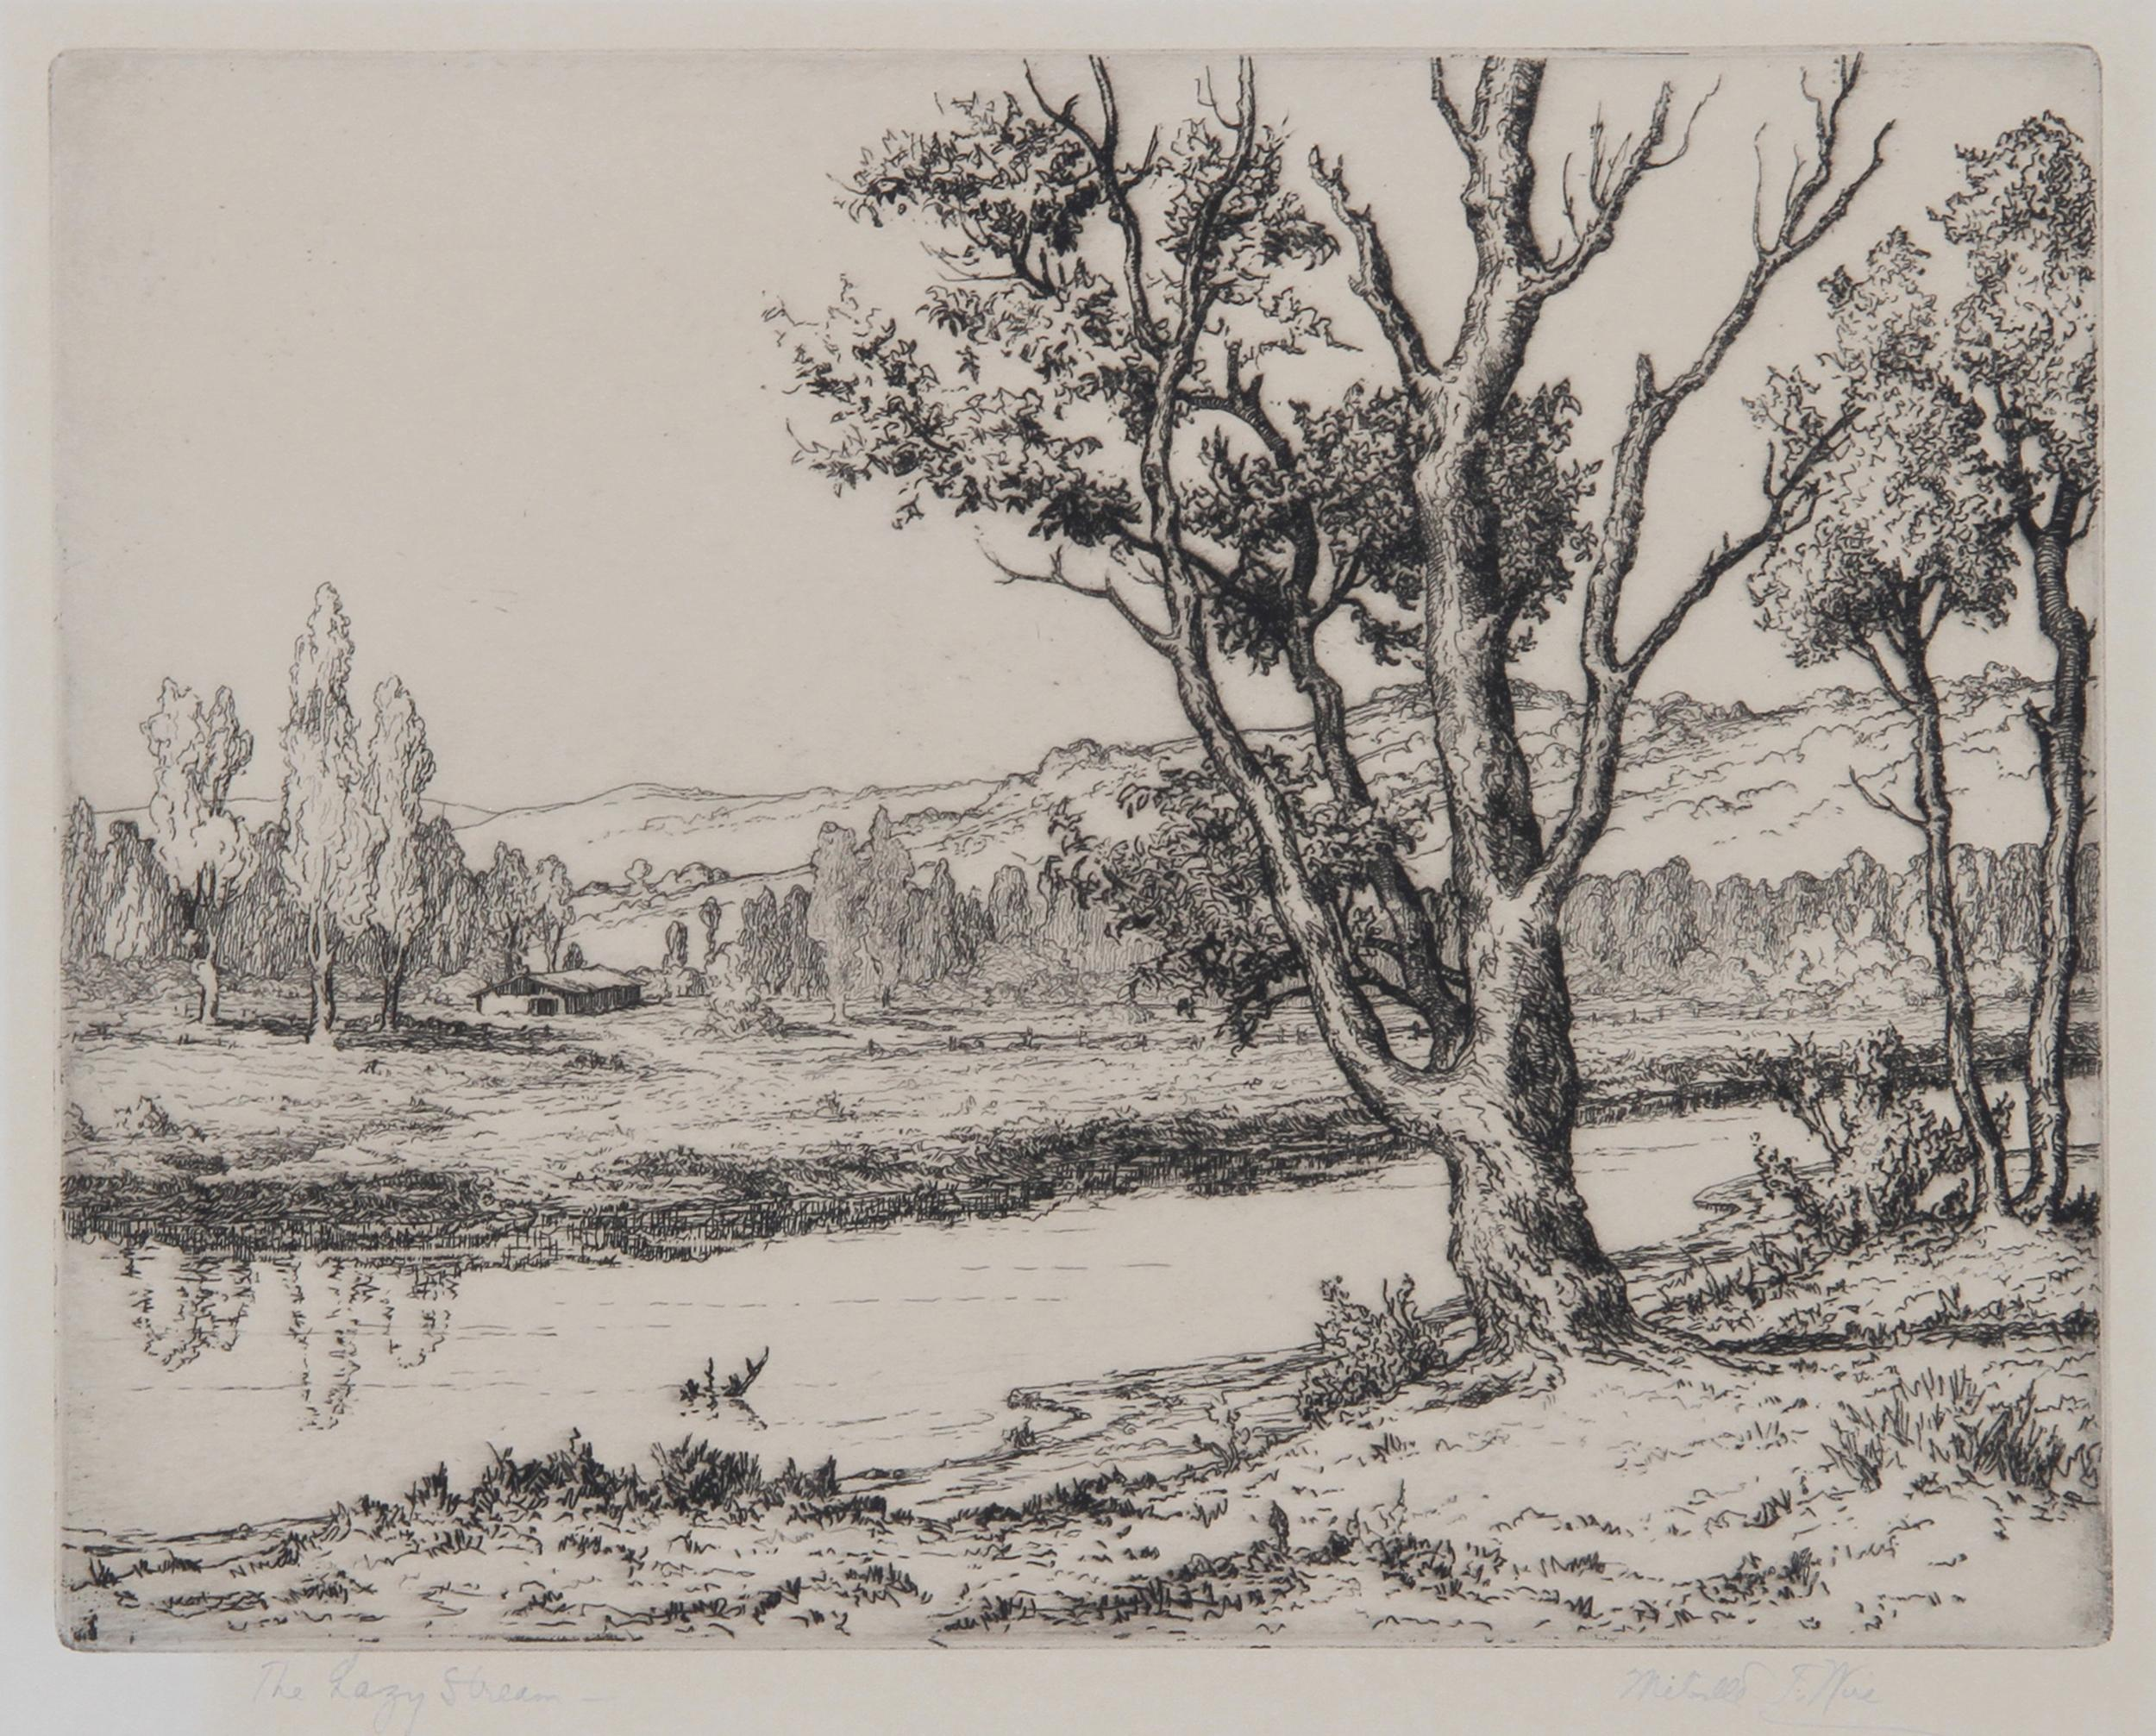 Melville Wire, The Lazy Stream, Etching